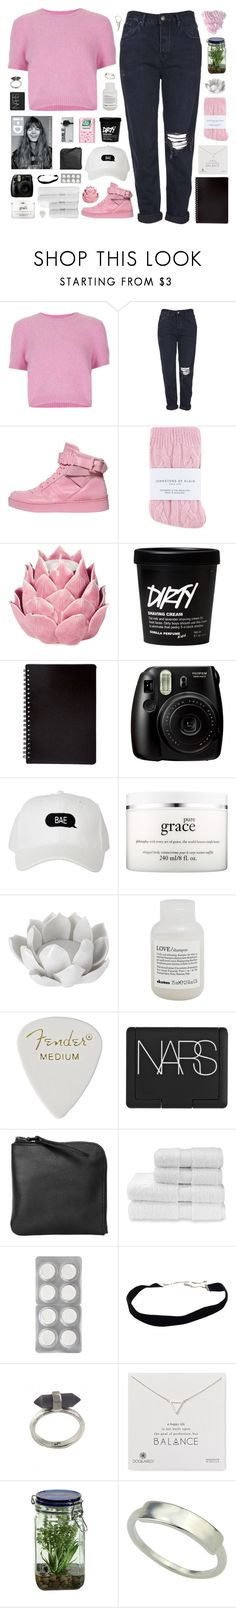 """we are the young we are the world"" by via-m ❤ liked on Polyvore featuring Topshop, Moschino, Johnstons, Zara Home, Fujifilm, philosophy, Pavilion Broadway, Davines, NARS Cosmetics and Xenab Lone"